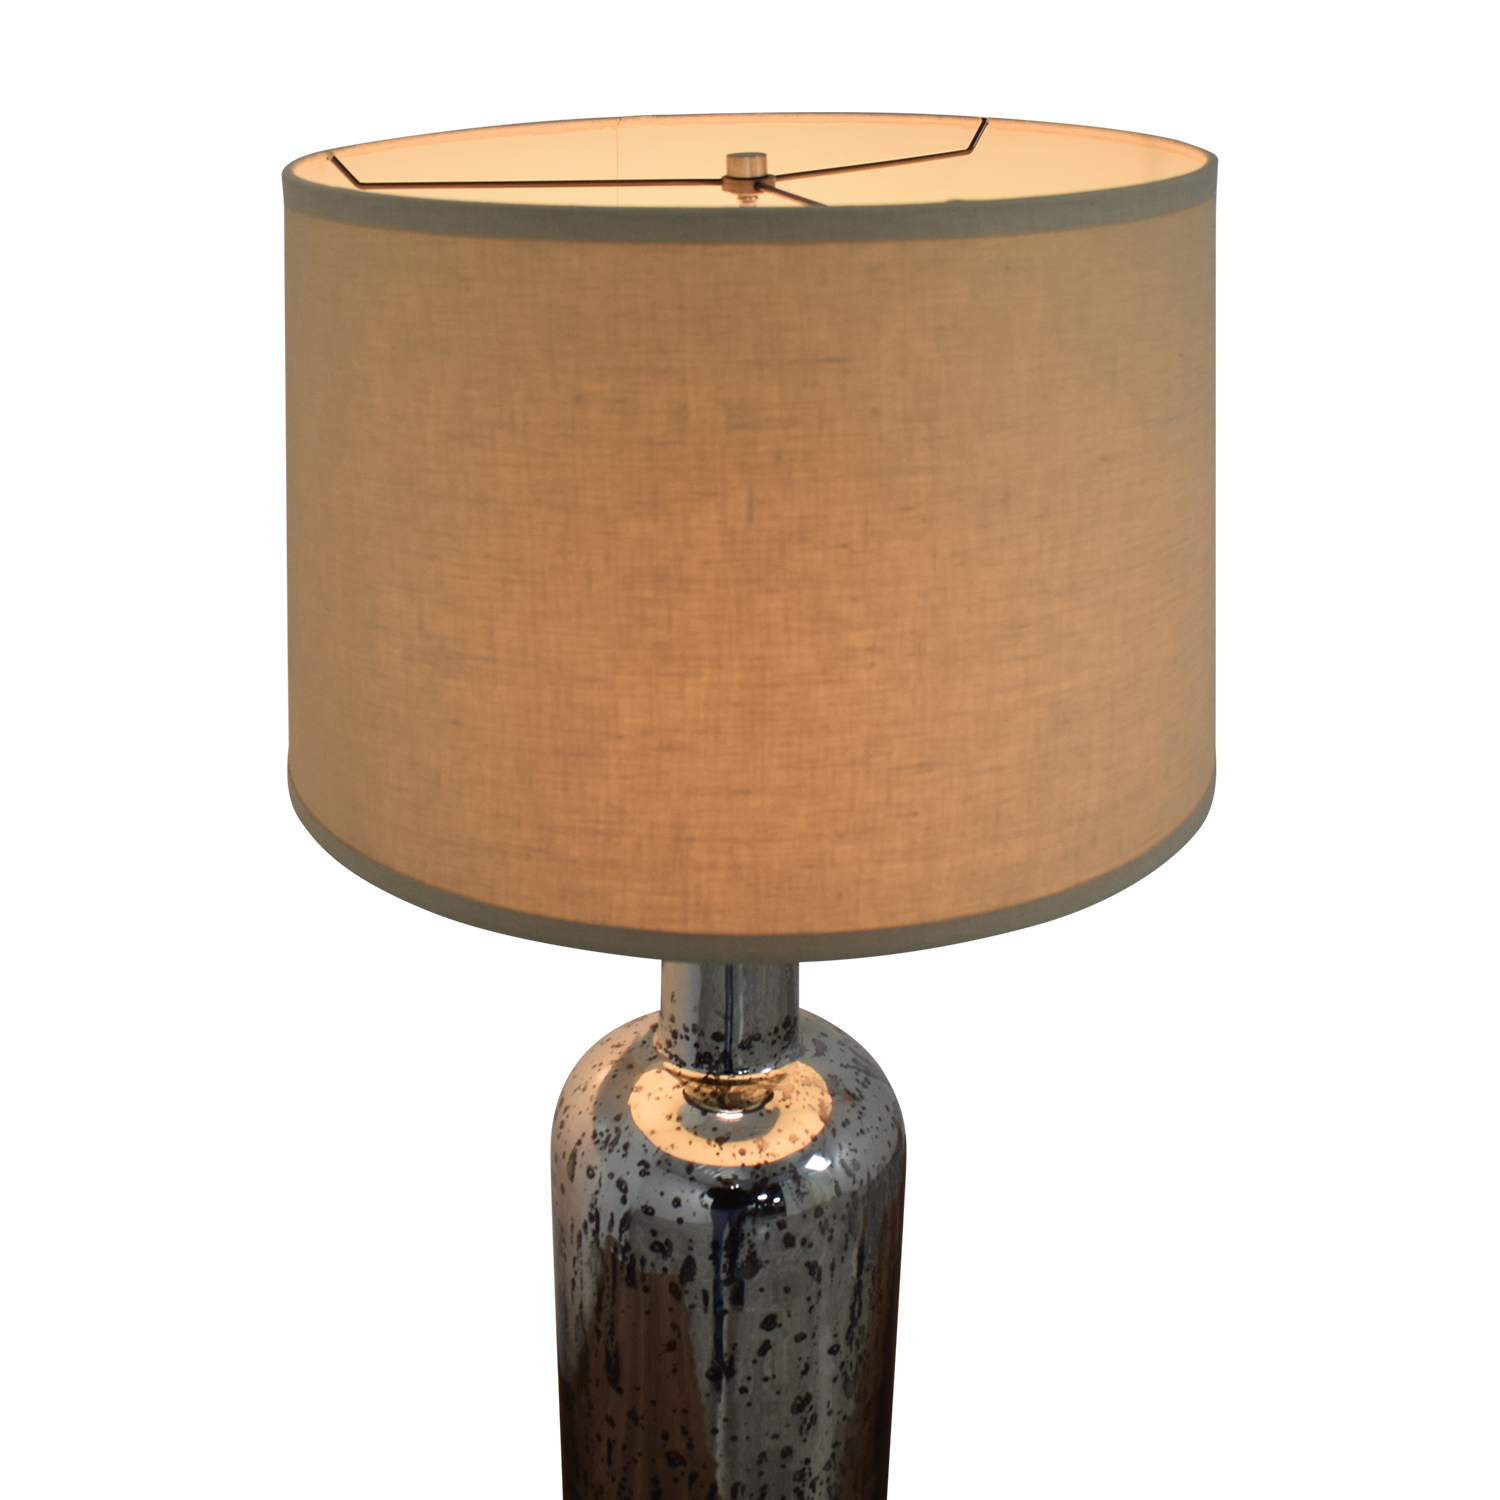 Restoration Hardware Restoration Hardware 19th C. Vintage Mercury Glass Medium Table Lamp Lamps